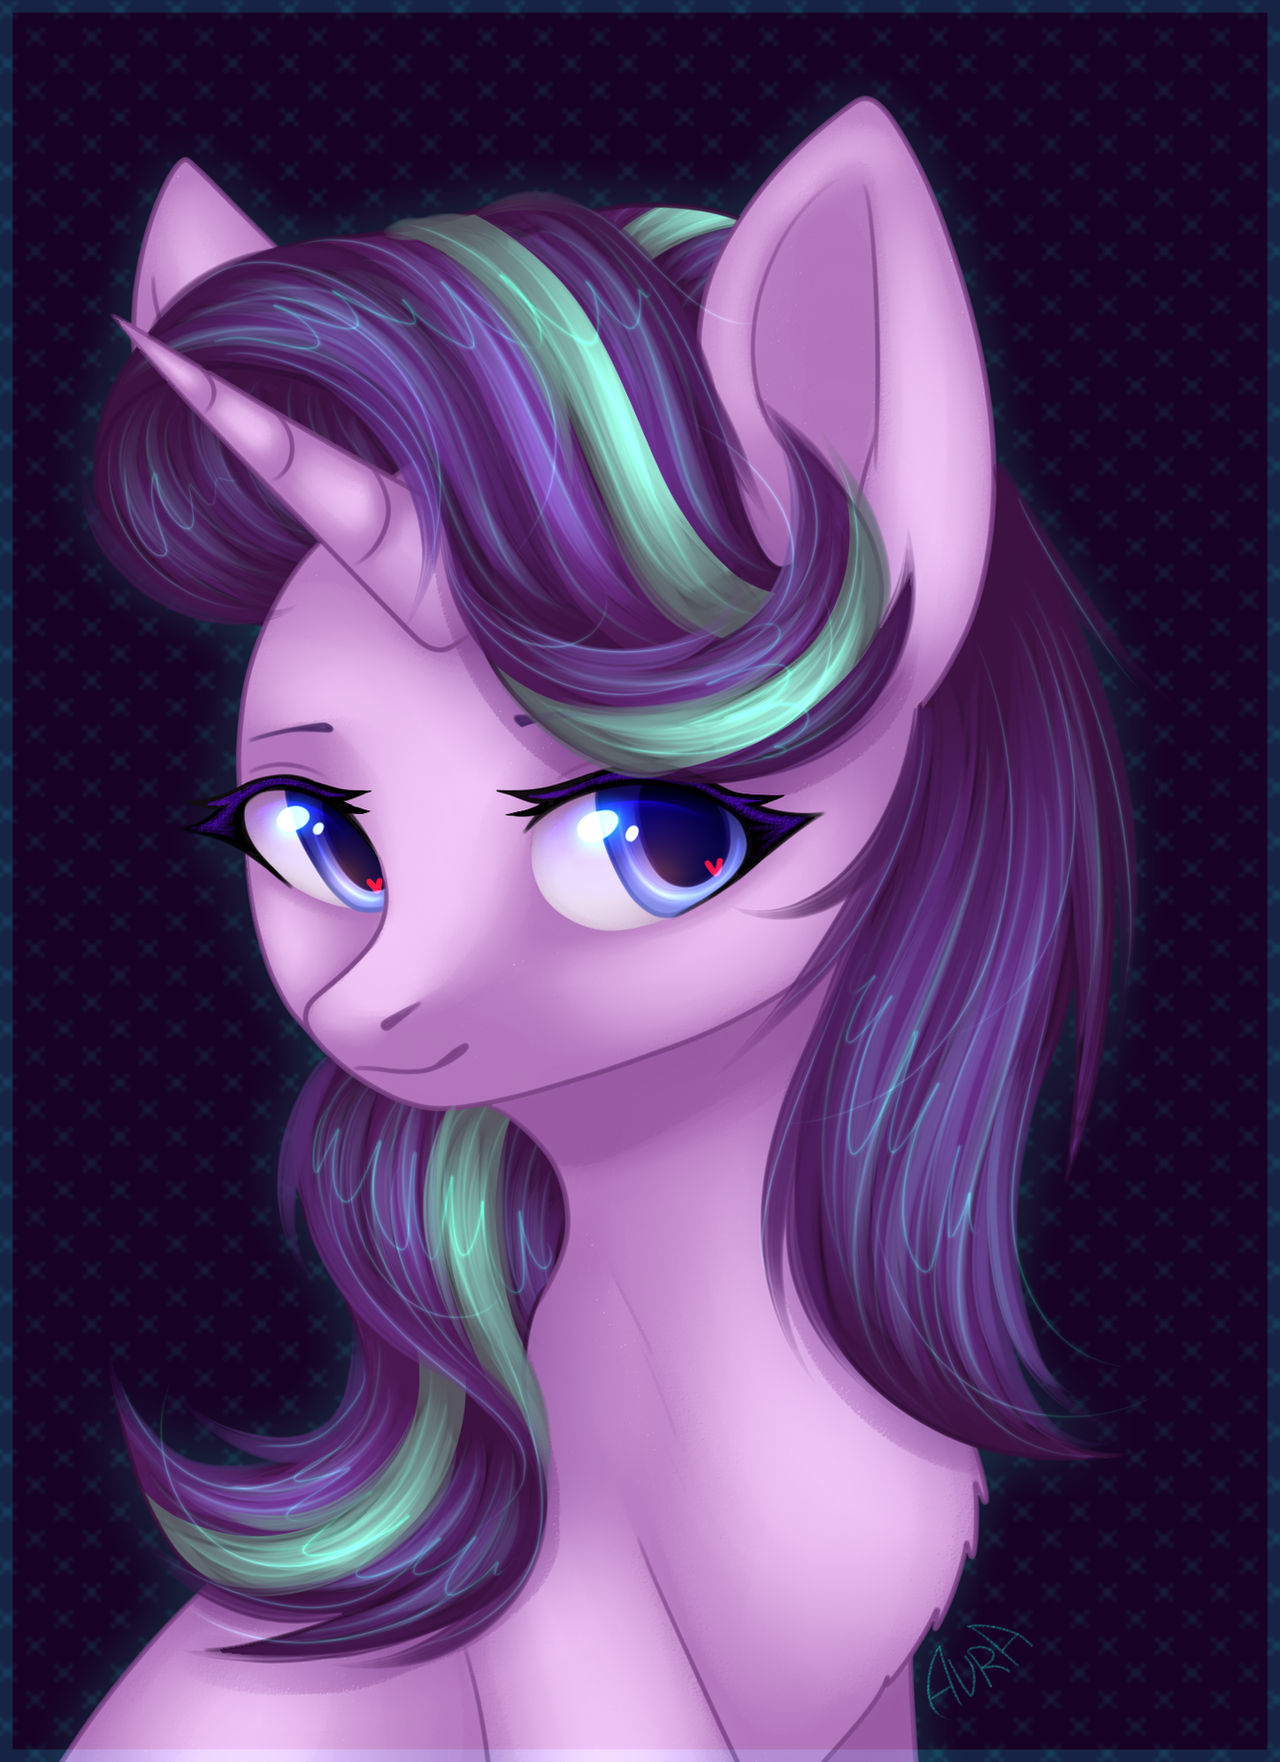 starlight_by_avrameow_ddfncym-fullview.j